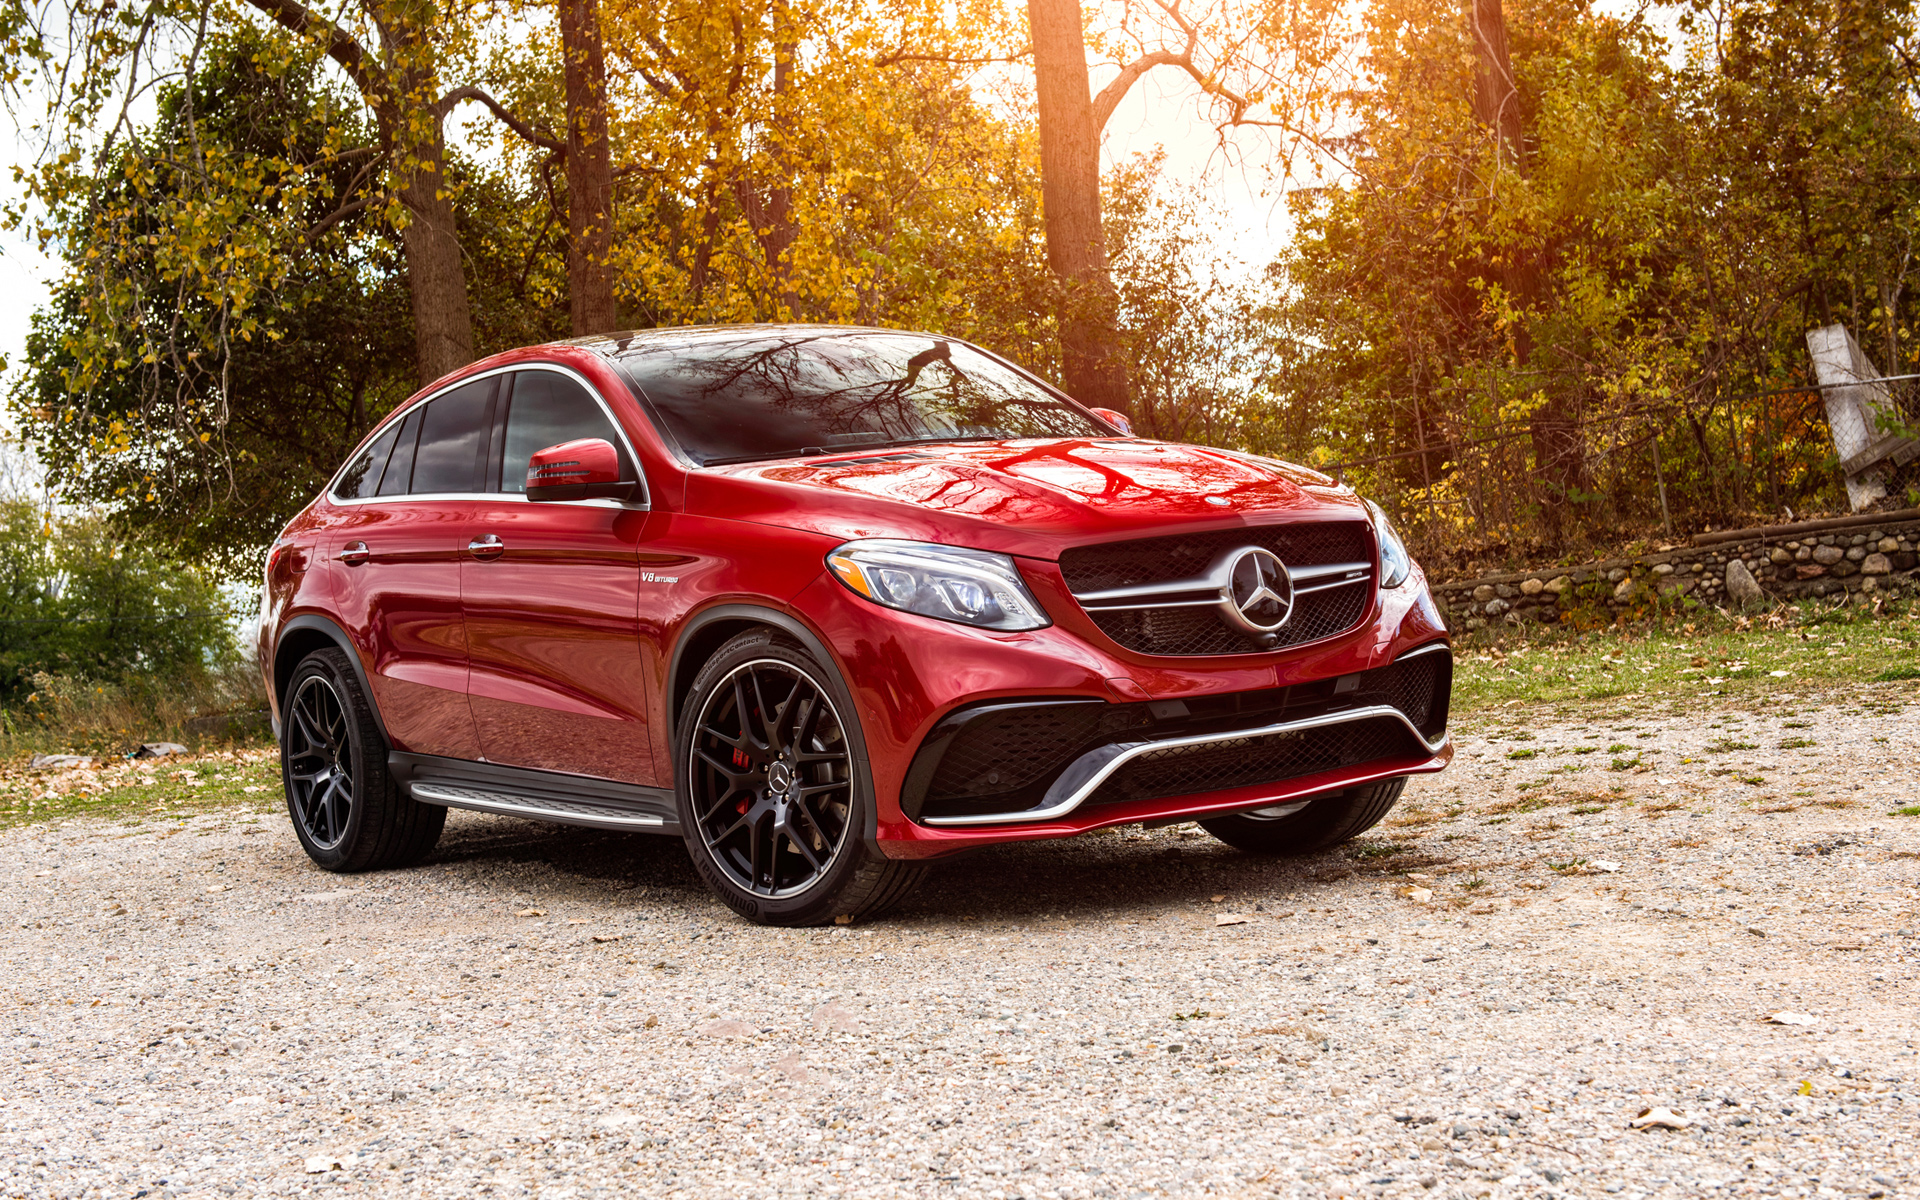 http://www.hdcarwallpapers.com/walls/2016_mercedes_amg_gle63_s_coupe-wide.jpg